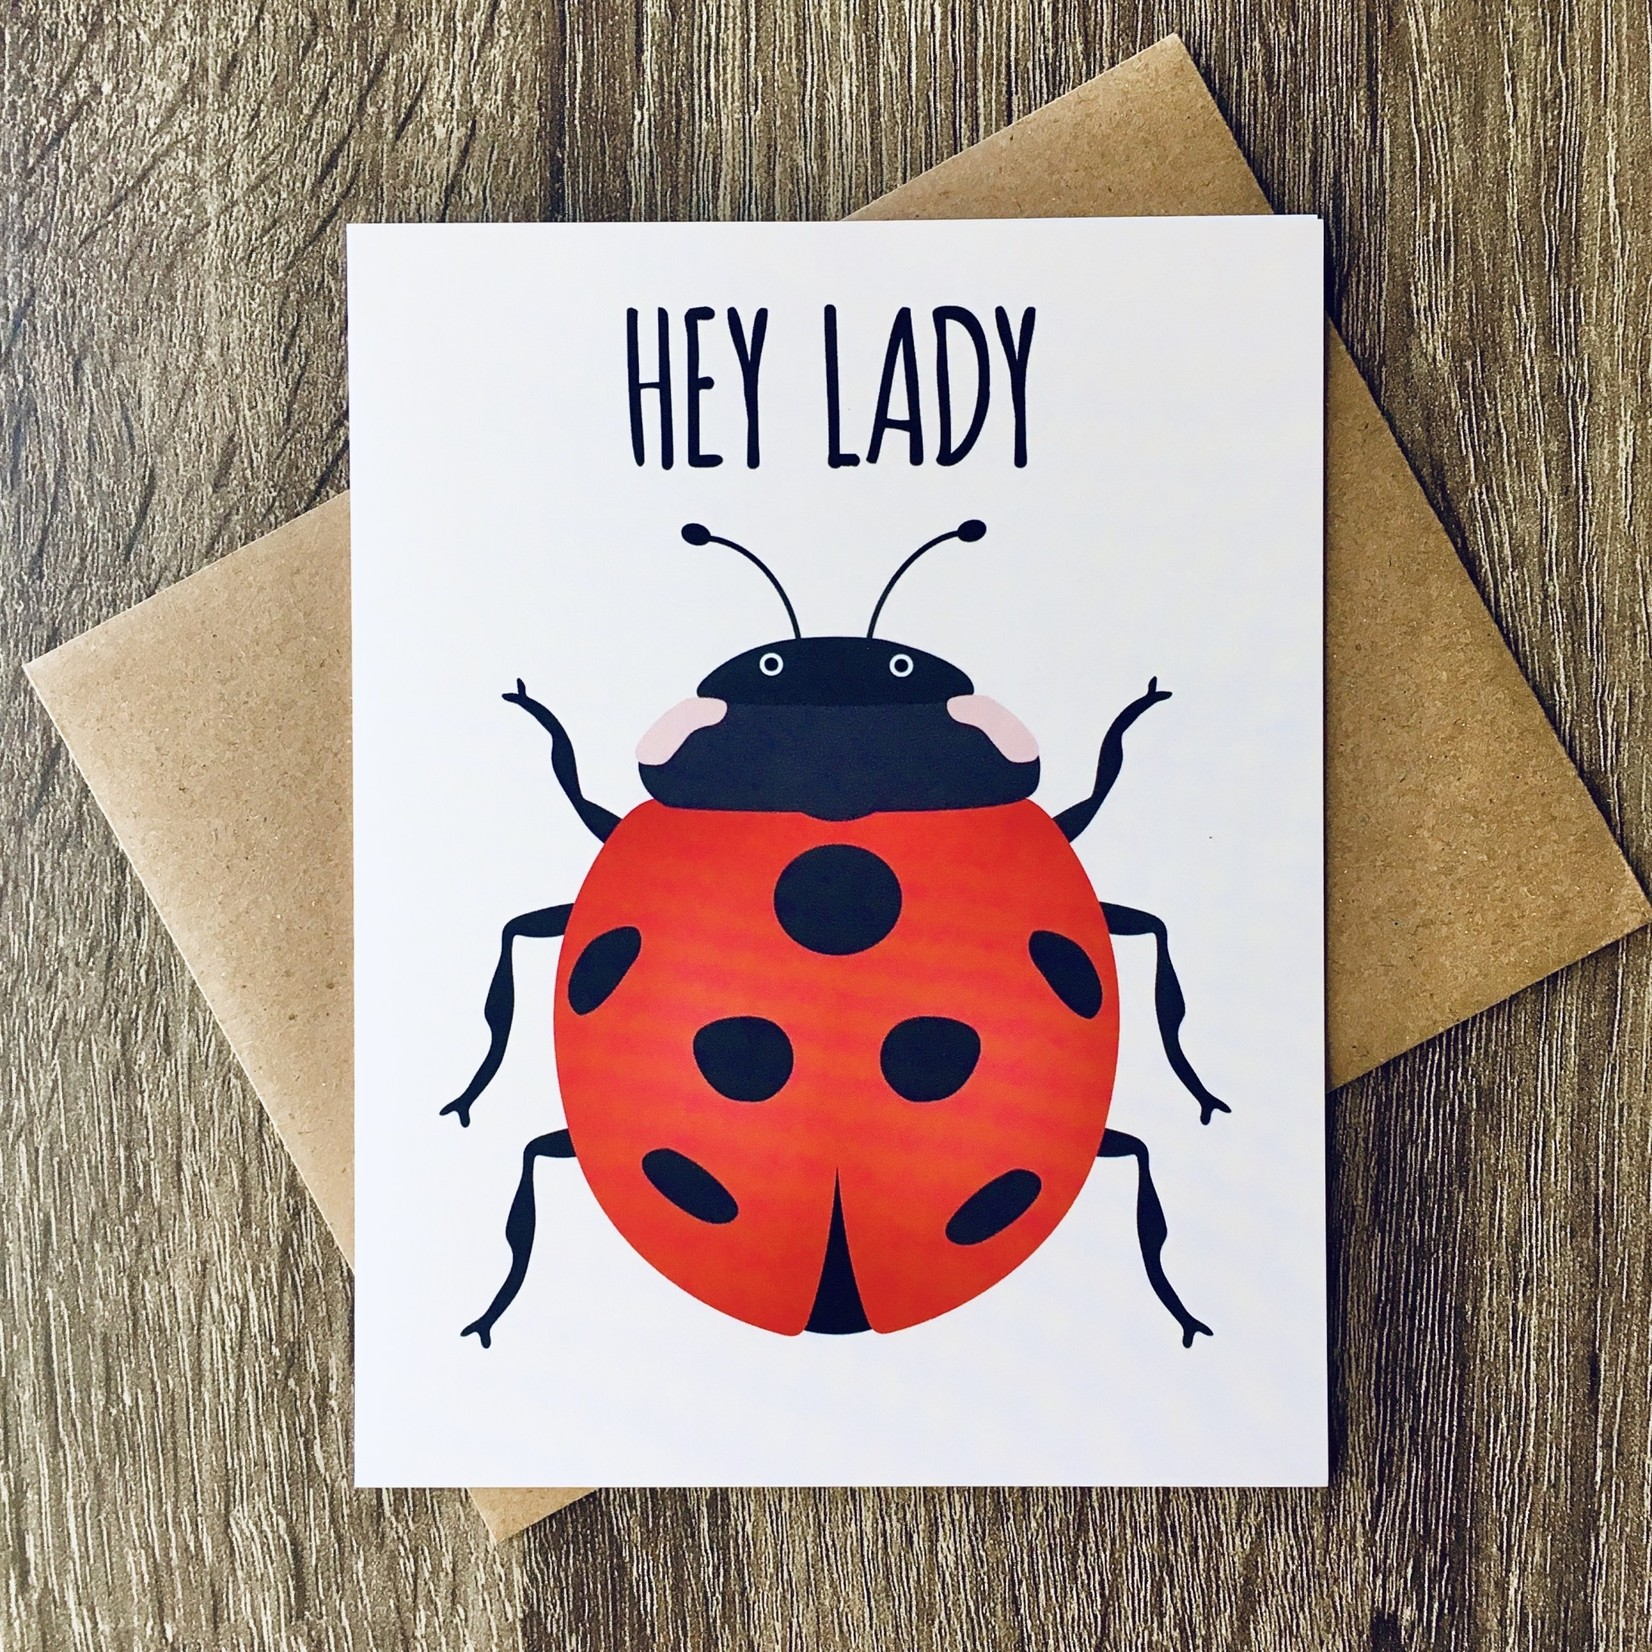 Mr. Sogs Creatures Hey Lady Ladybug Greeting Card